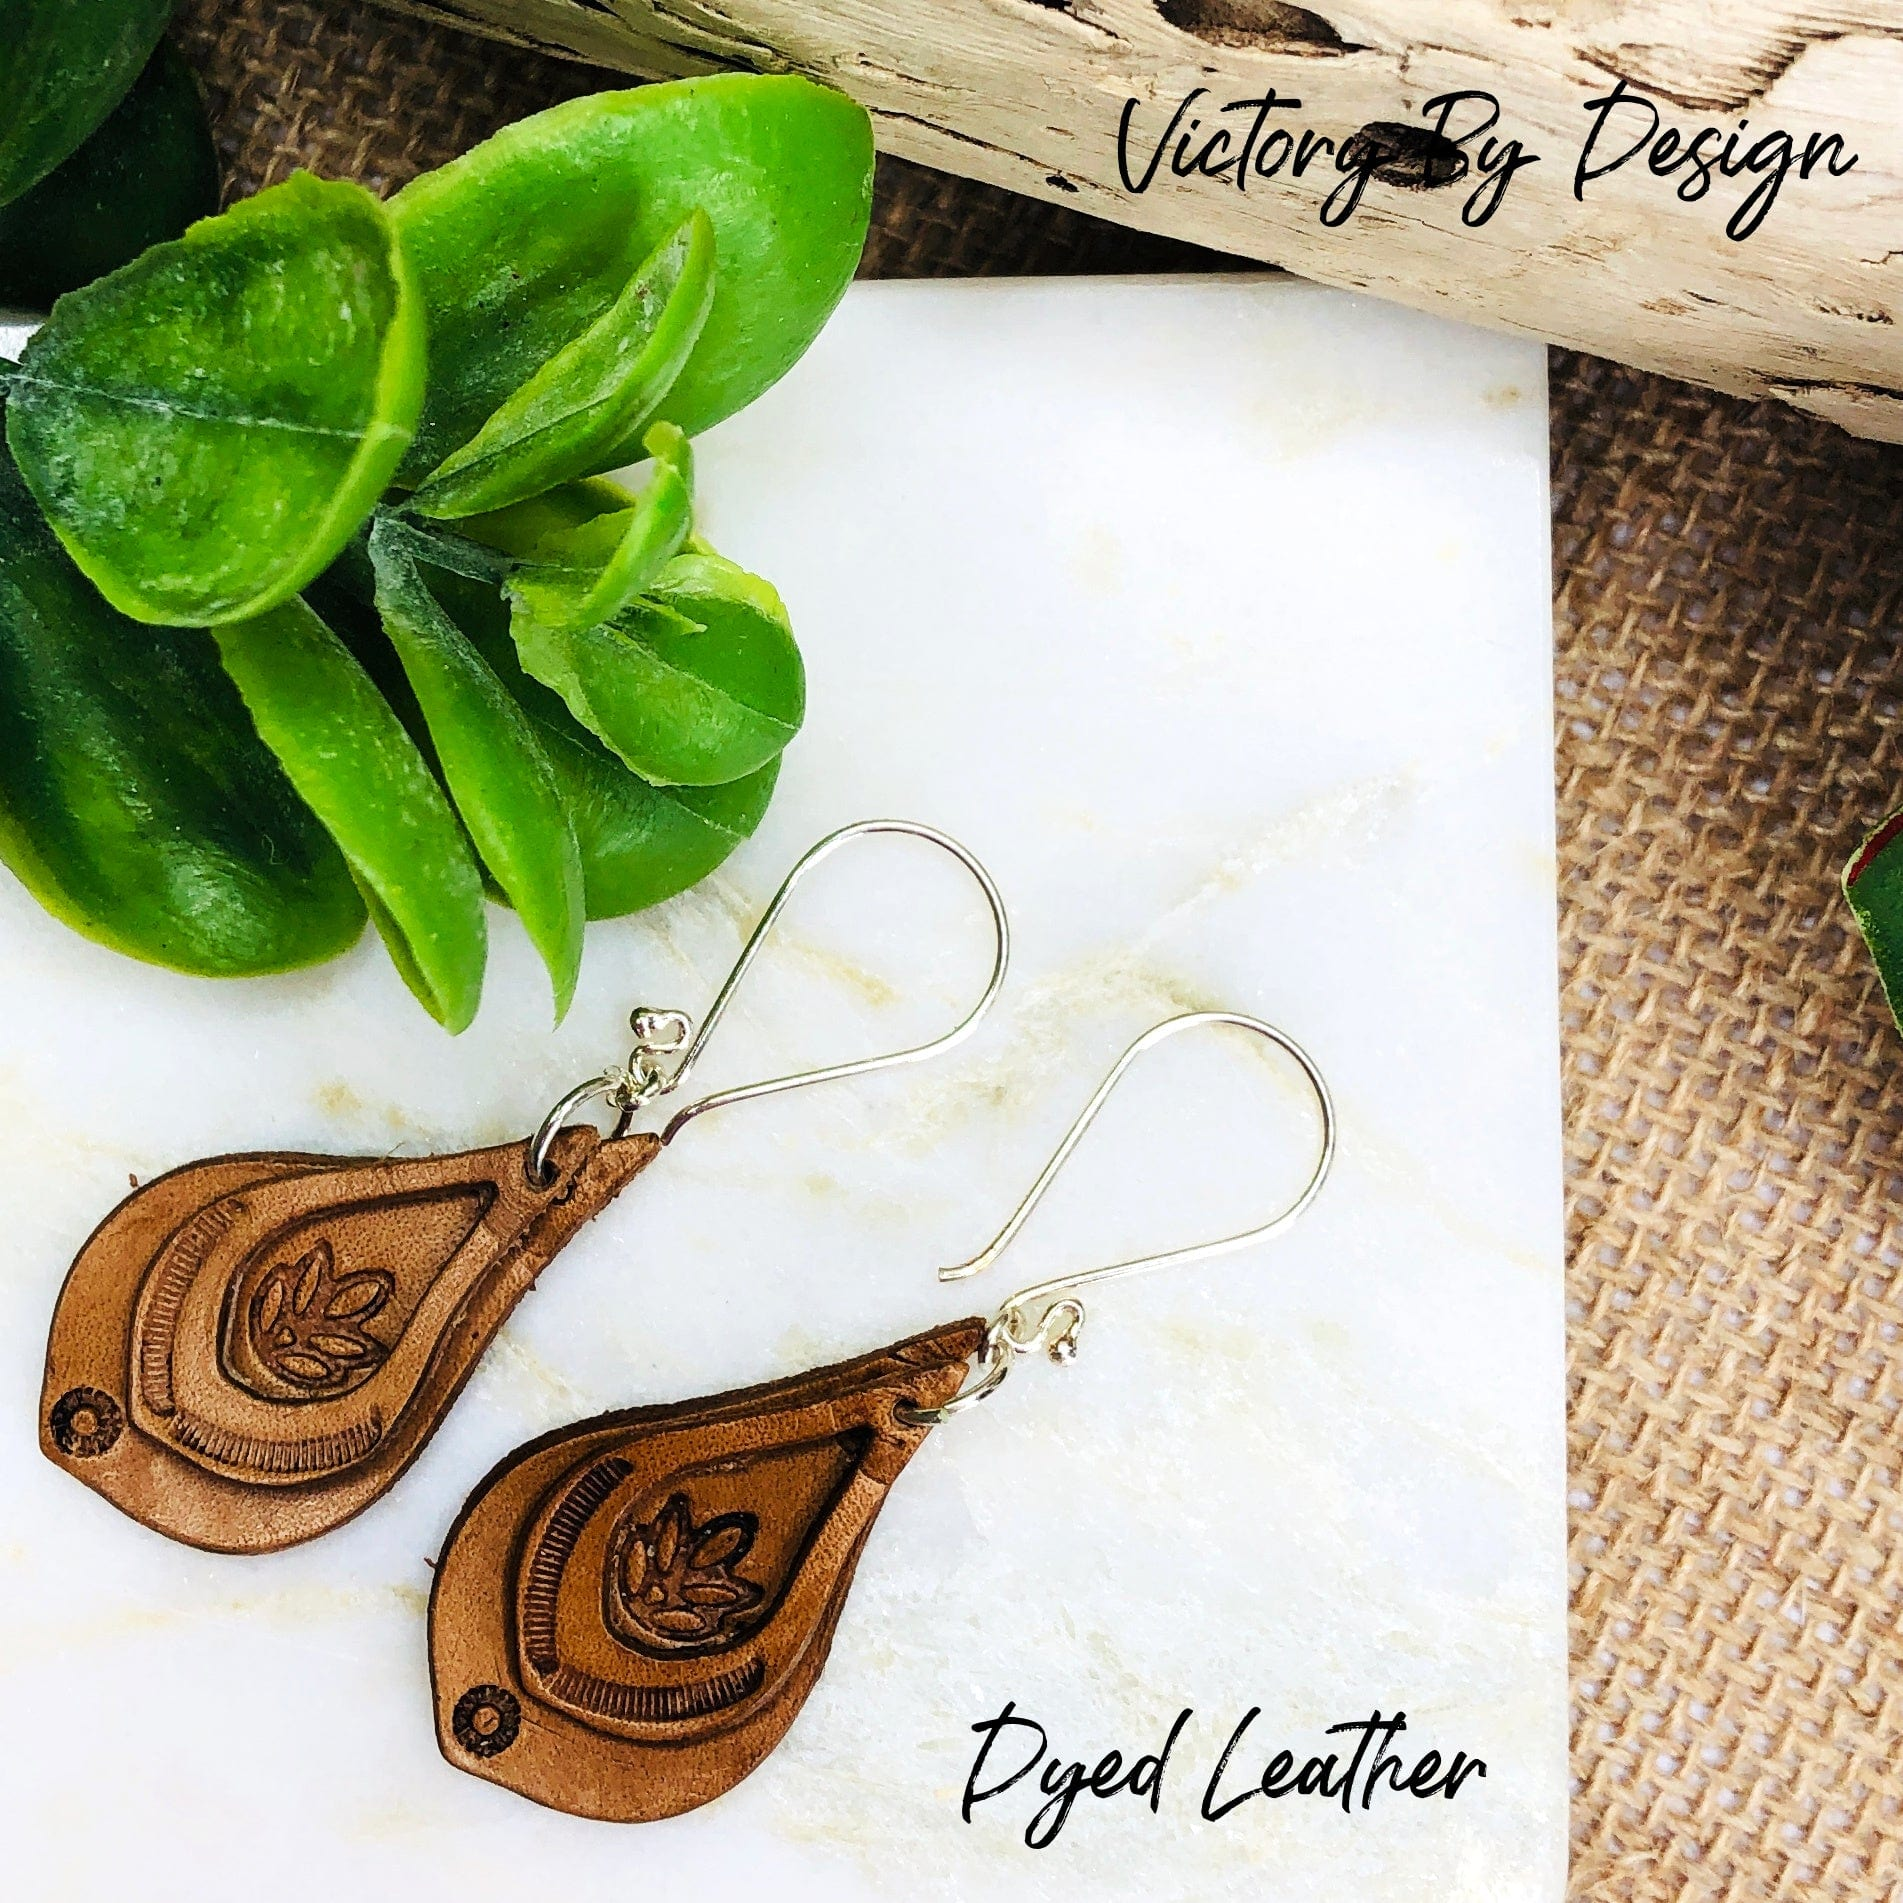 Teardrop Overlay Leather Earrings with Leaf Design